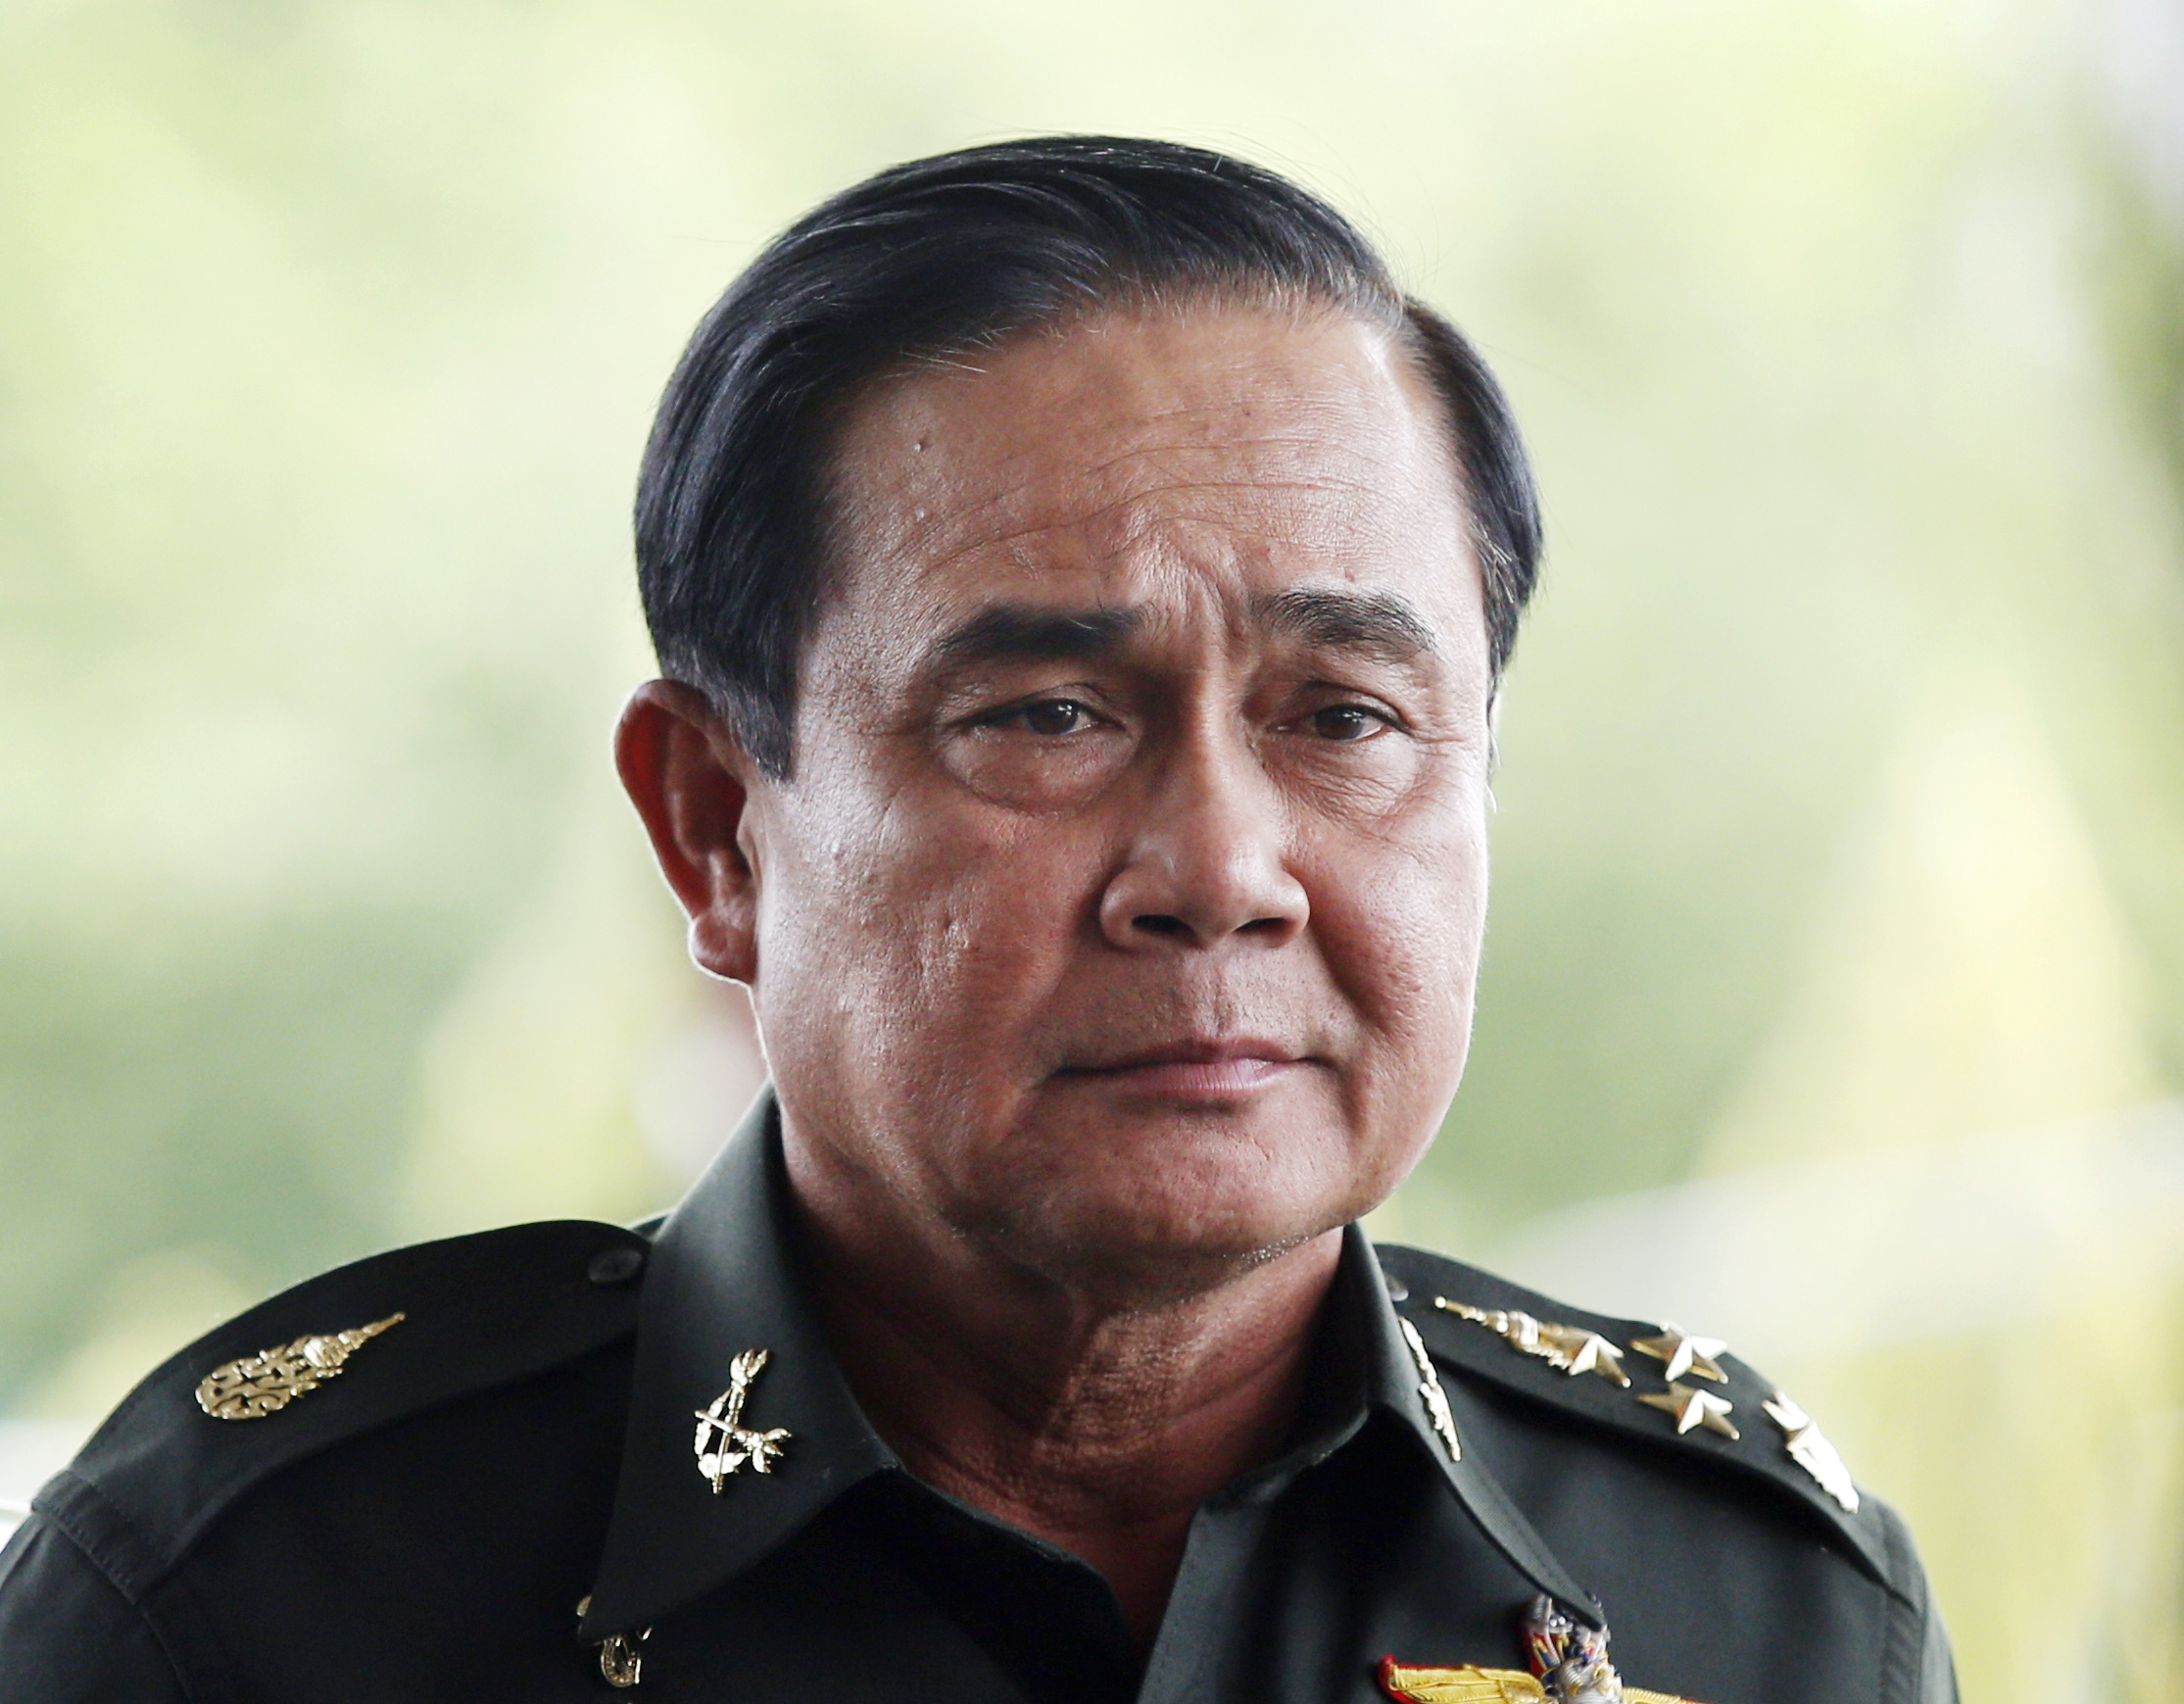 Thai army chief General Prayuth Chan-ocha arrives to give a news conference at the Army Club in Bangkok on May 20, 2014